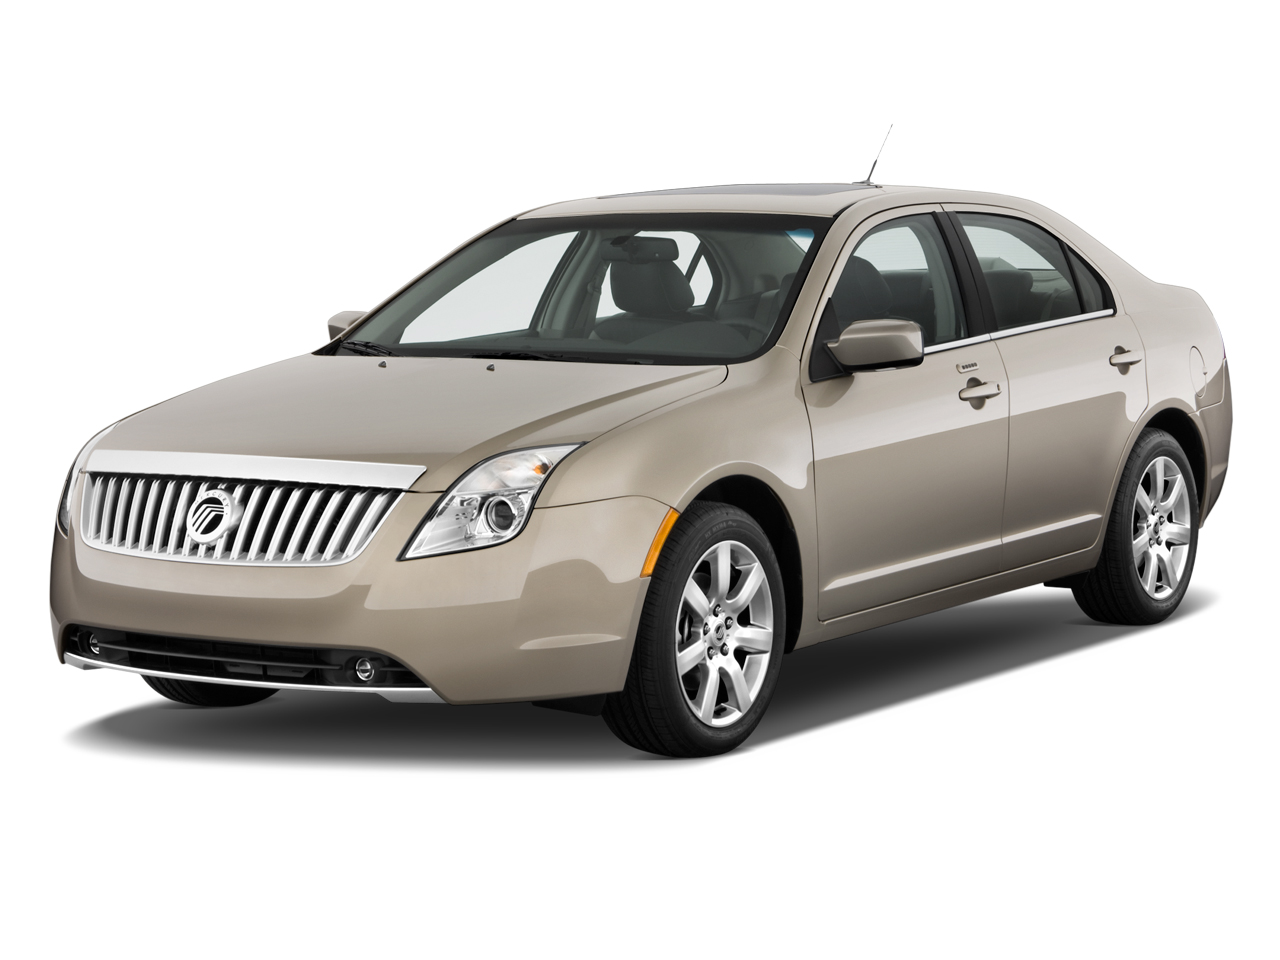 2010 Mercury Milan Review, Ratings, Specs, Prices, and ...